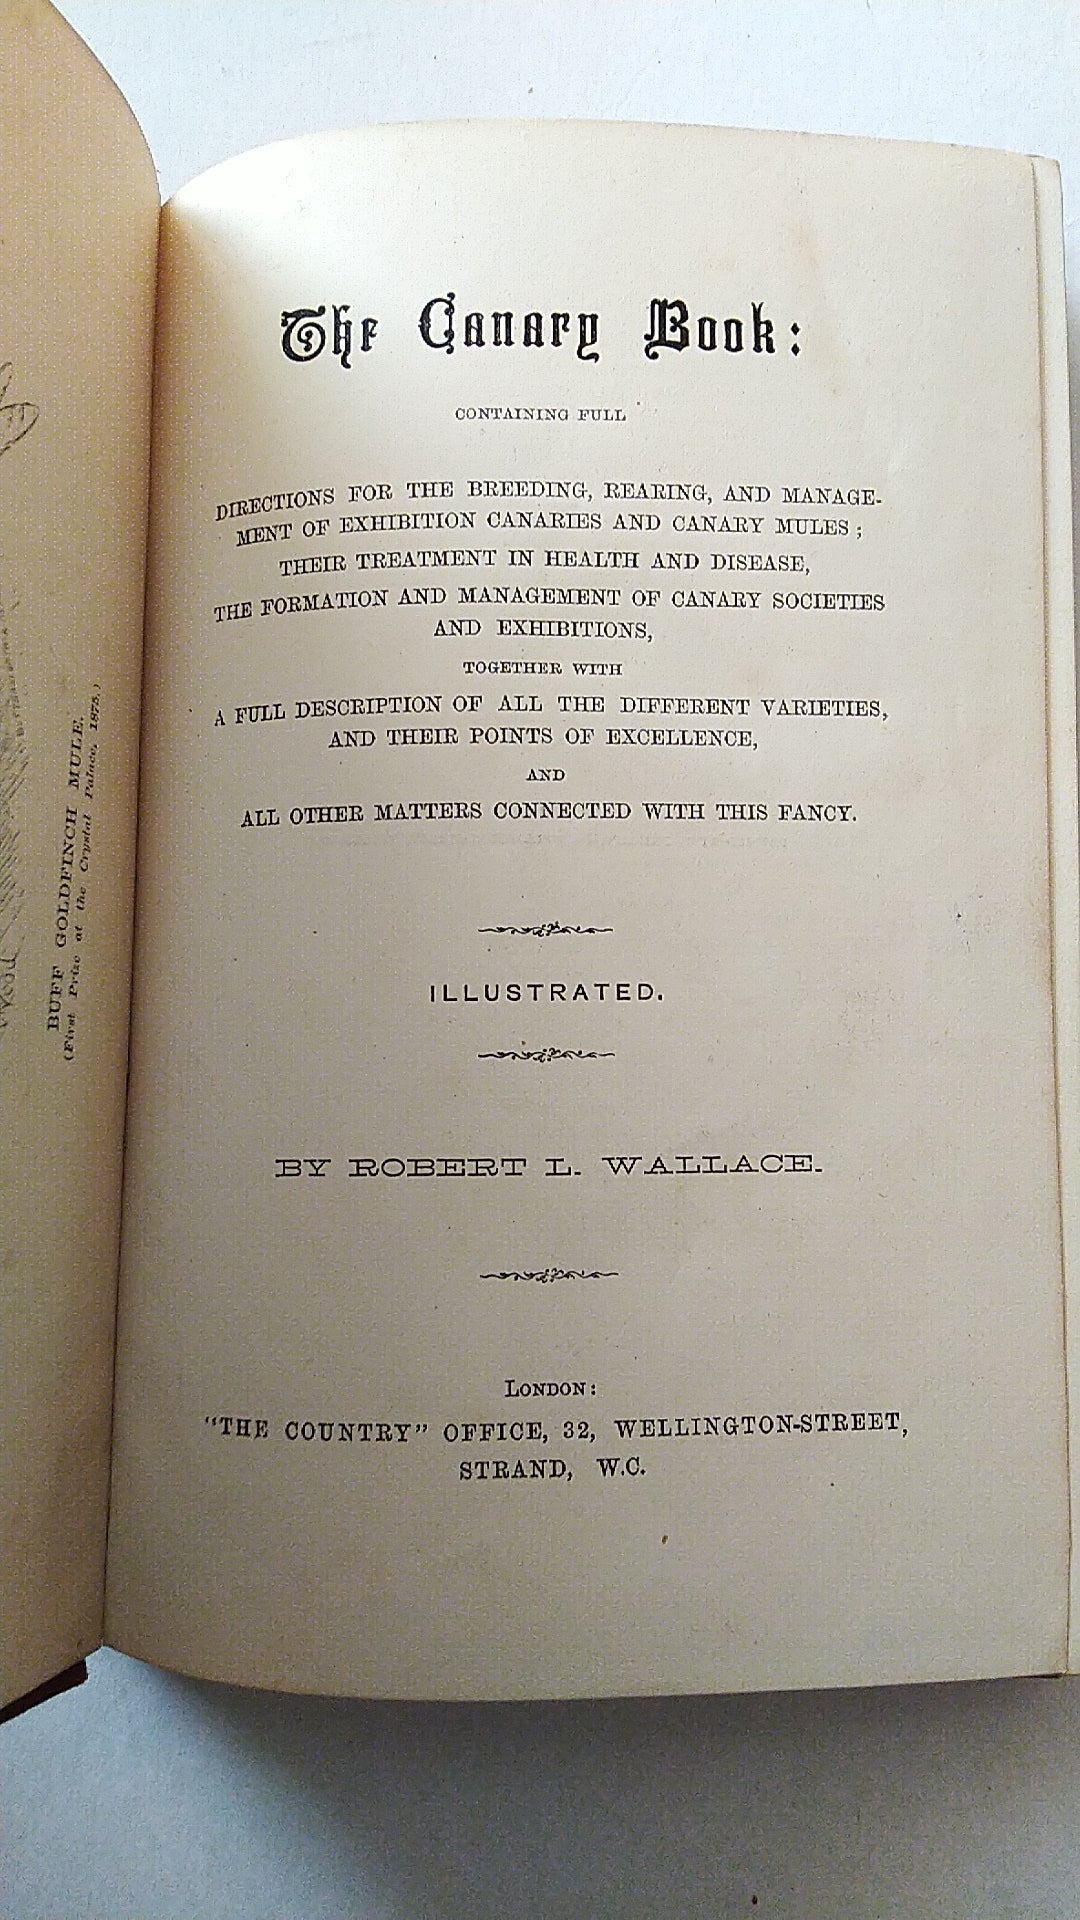 The Canary Book by R. Wallace First Edition 1875